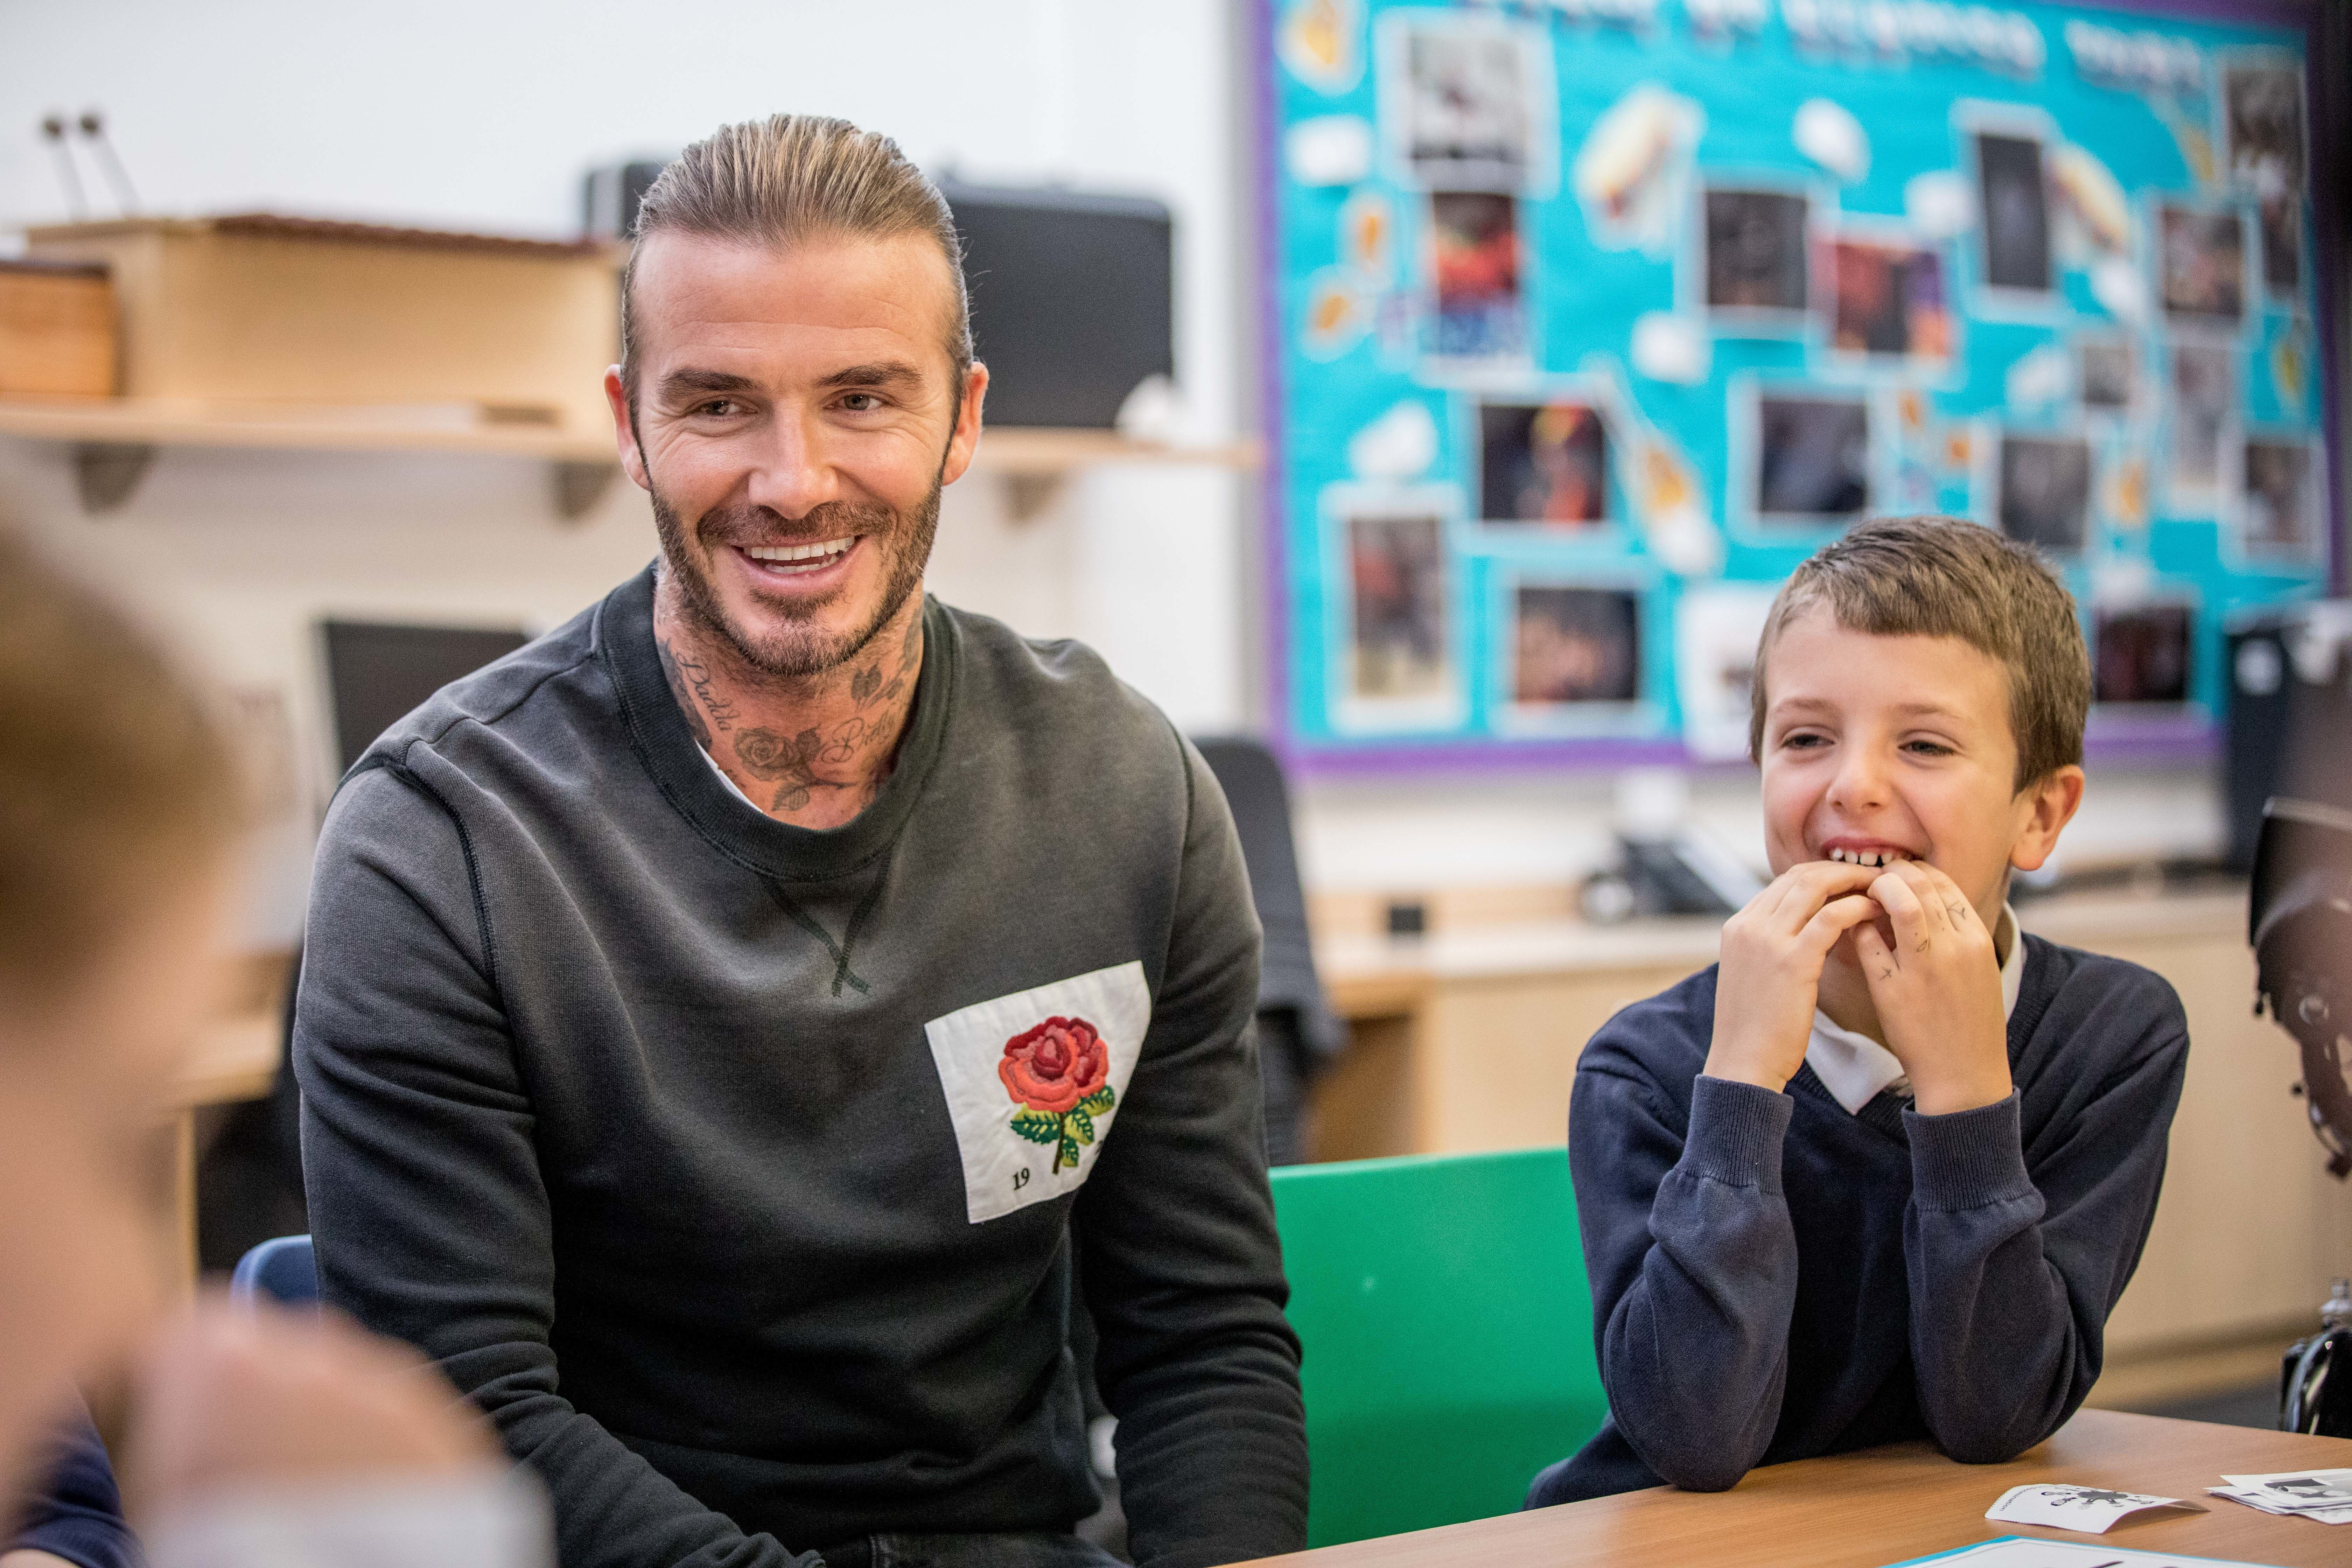 David Beckham appears as a UNICEF Goodwill Ambassador for a visit at the Kentish Town C of E Primary School in London on Nov. 20, 2017.